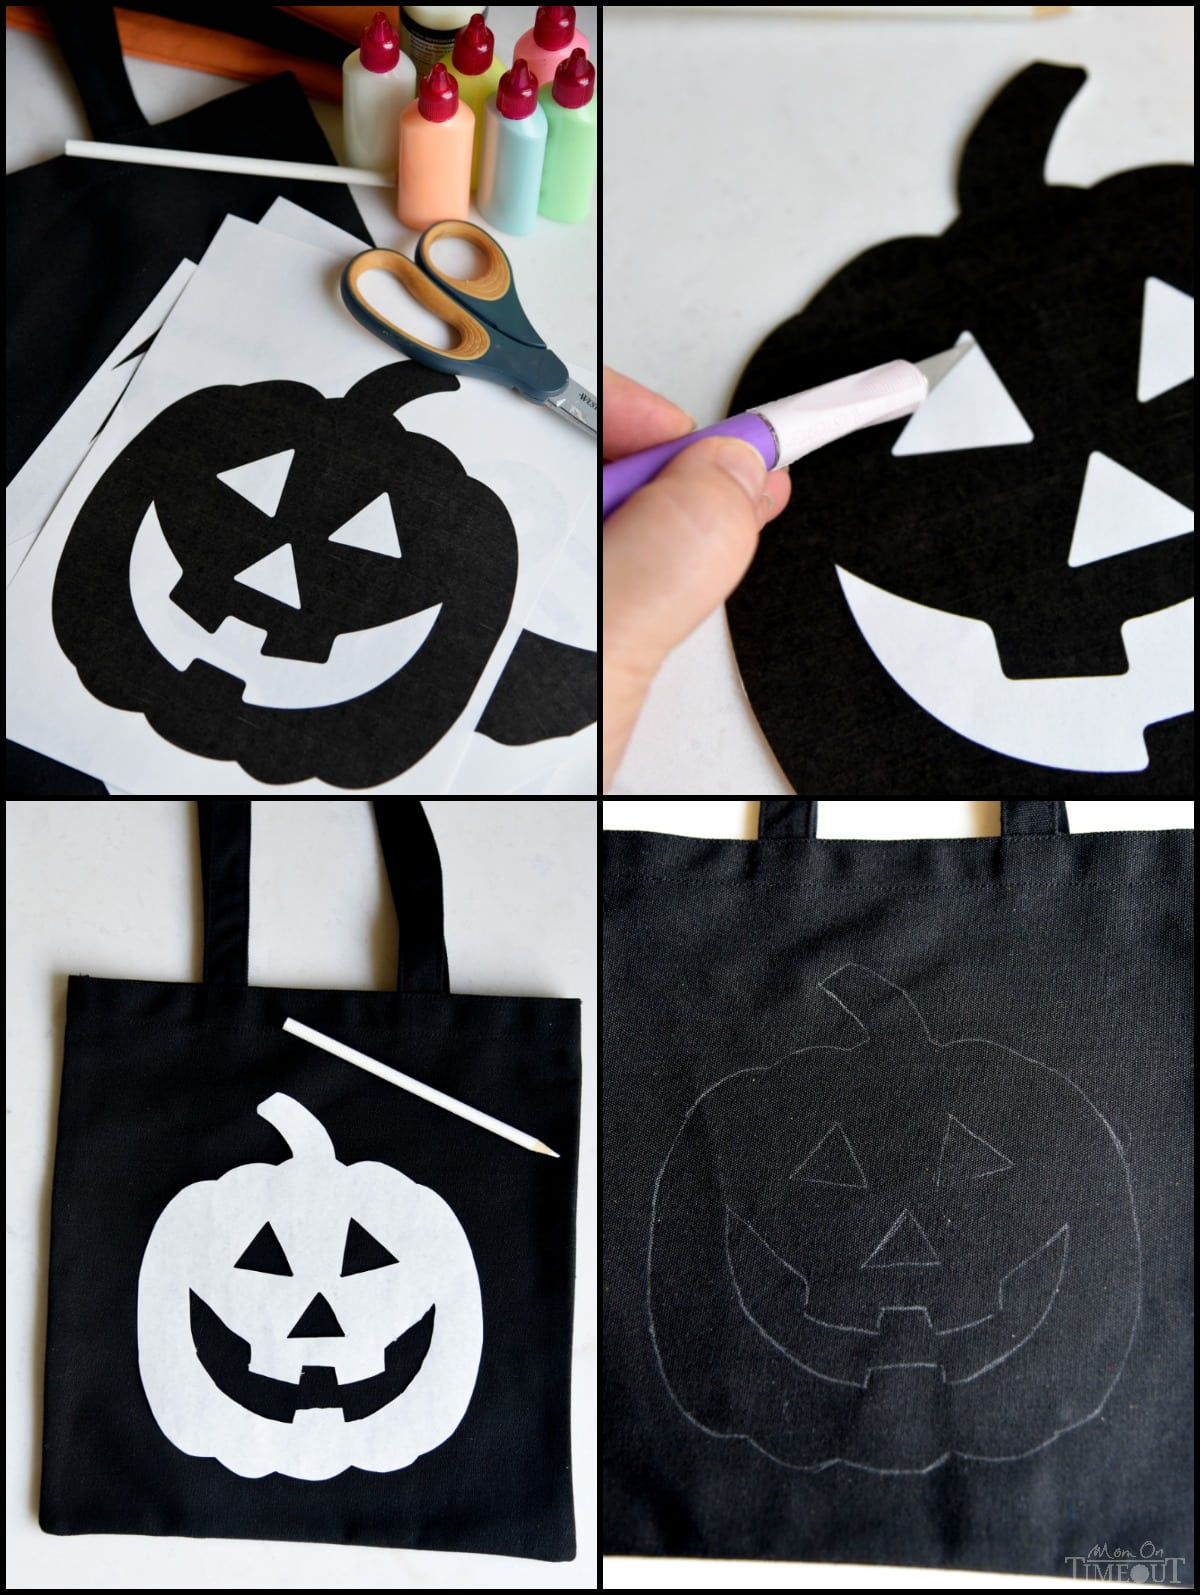 DIY Glow-in-the-Dark Trick-or-Treat Bags - Mom On Timeout